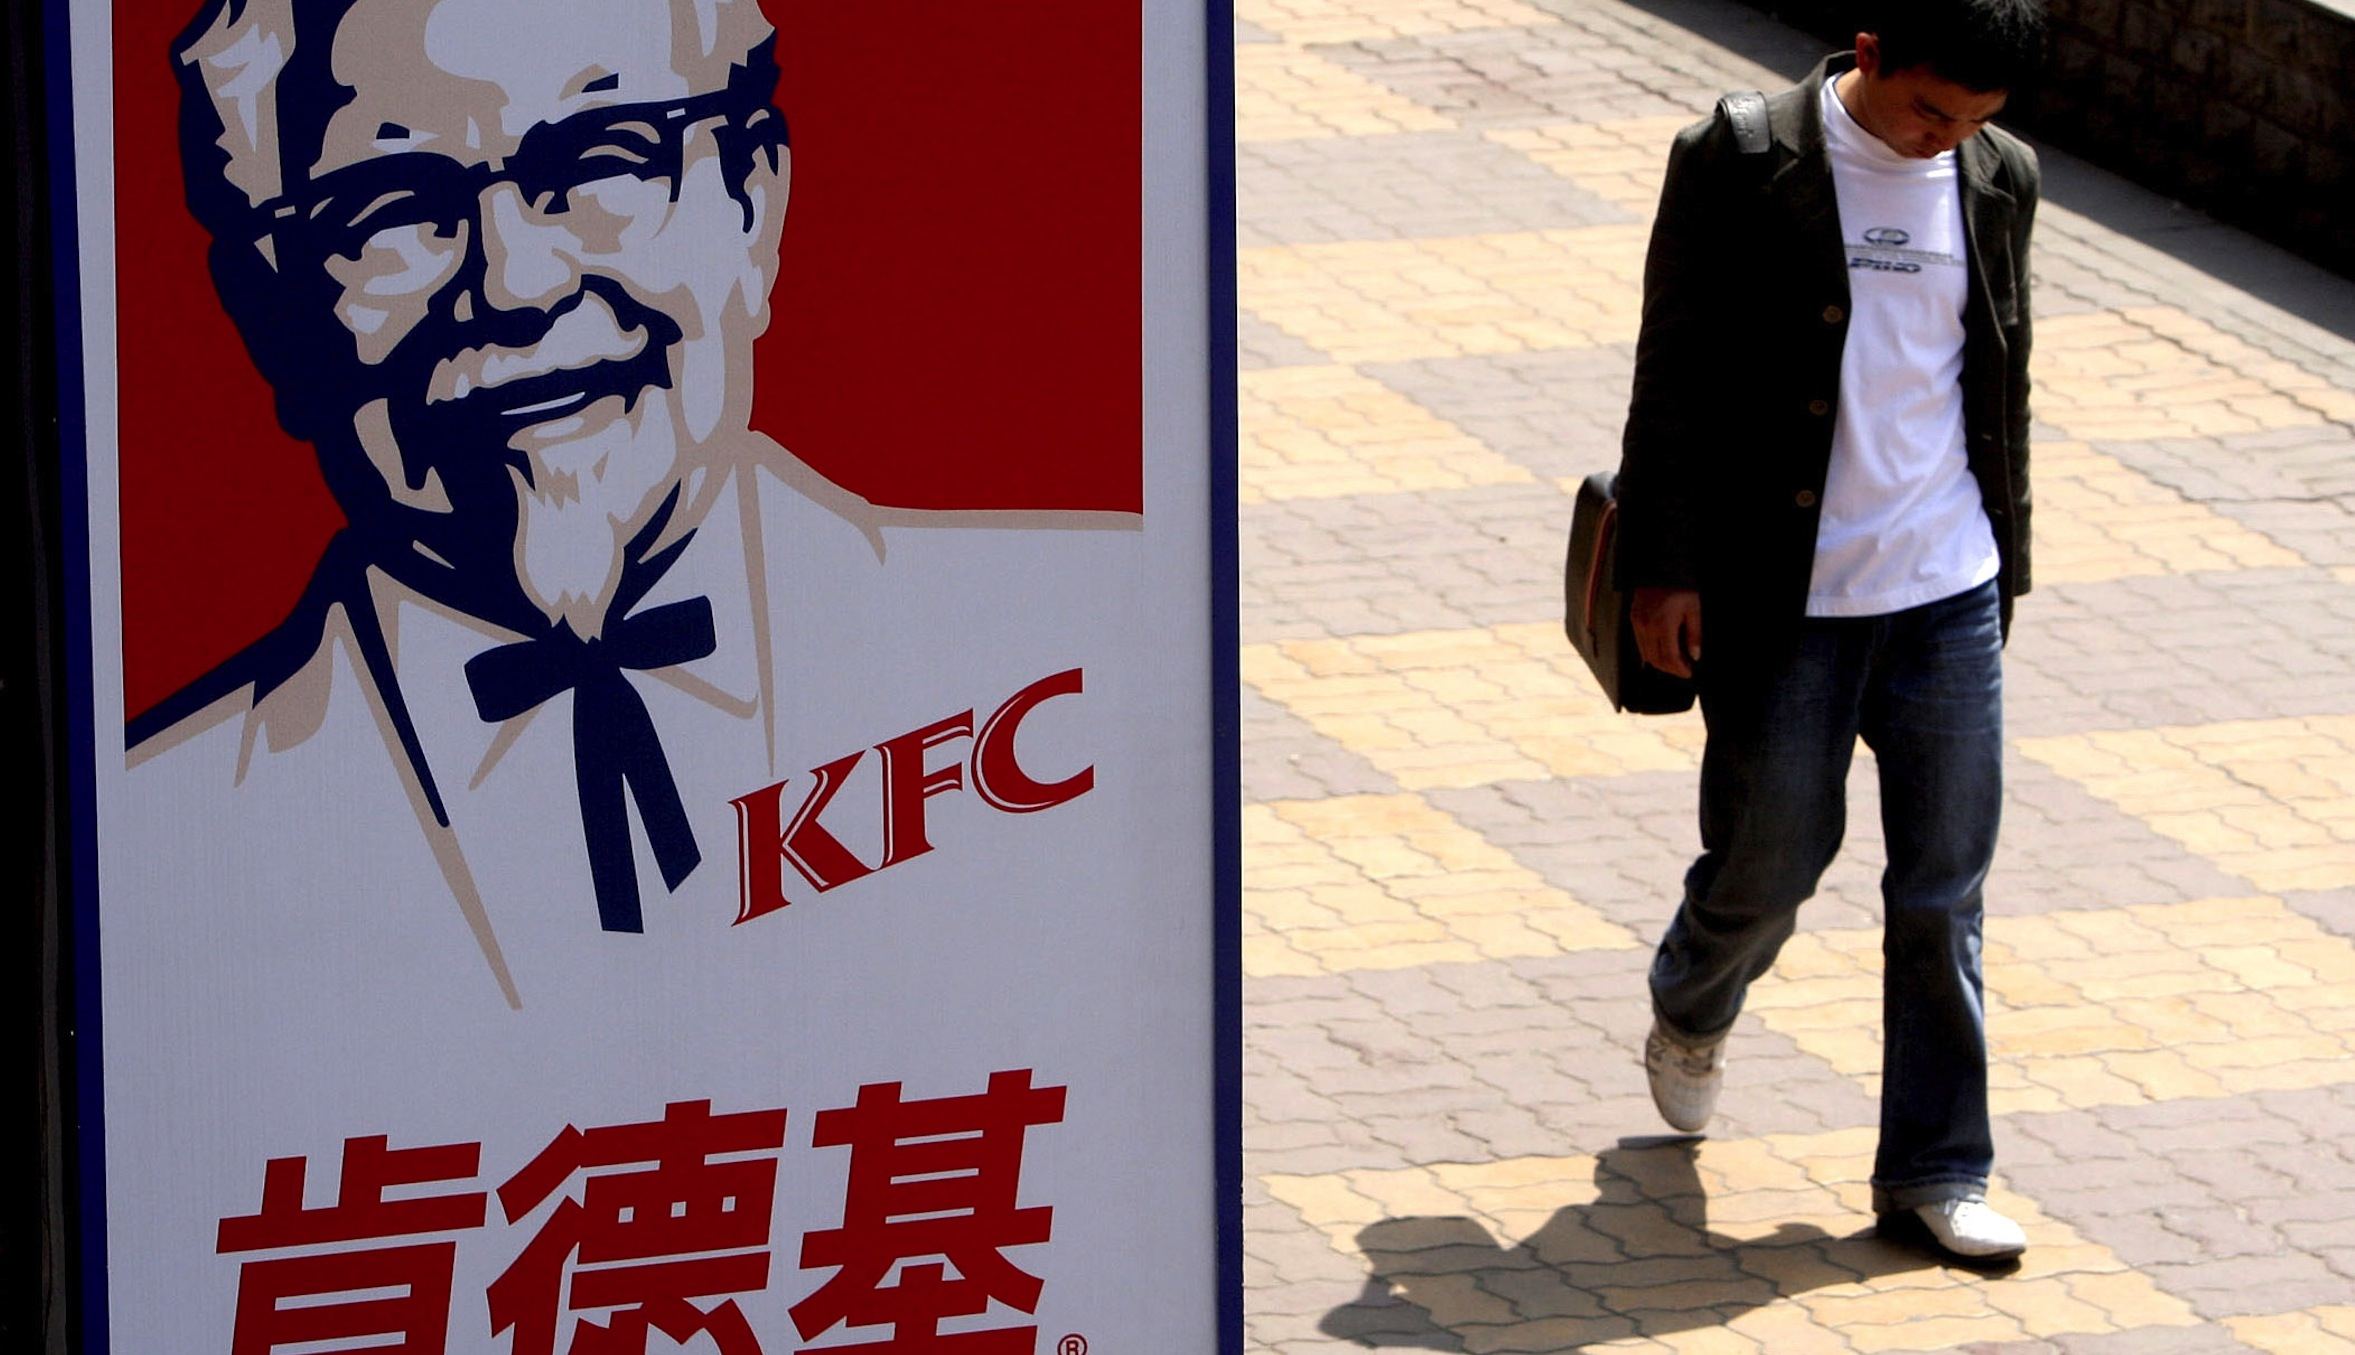 A man walks past a sign for KFC in Shanghai, China.